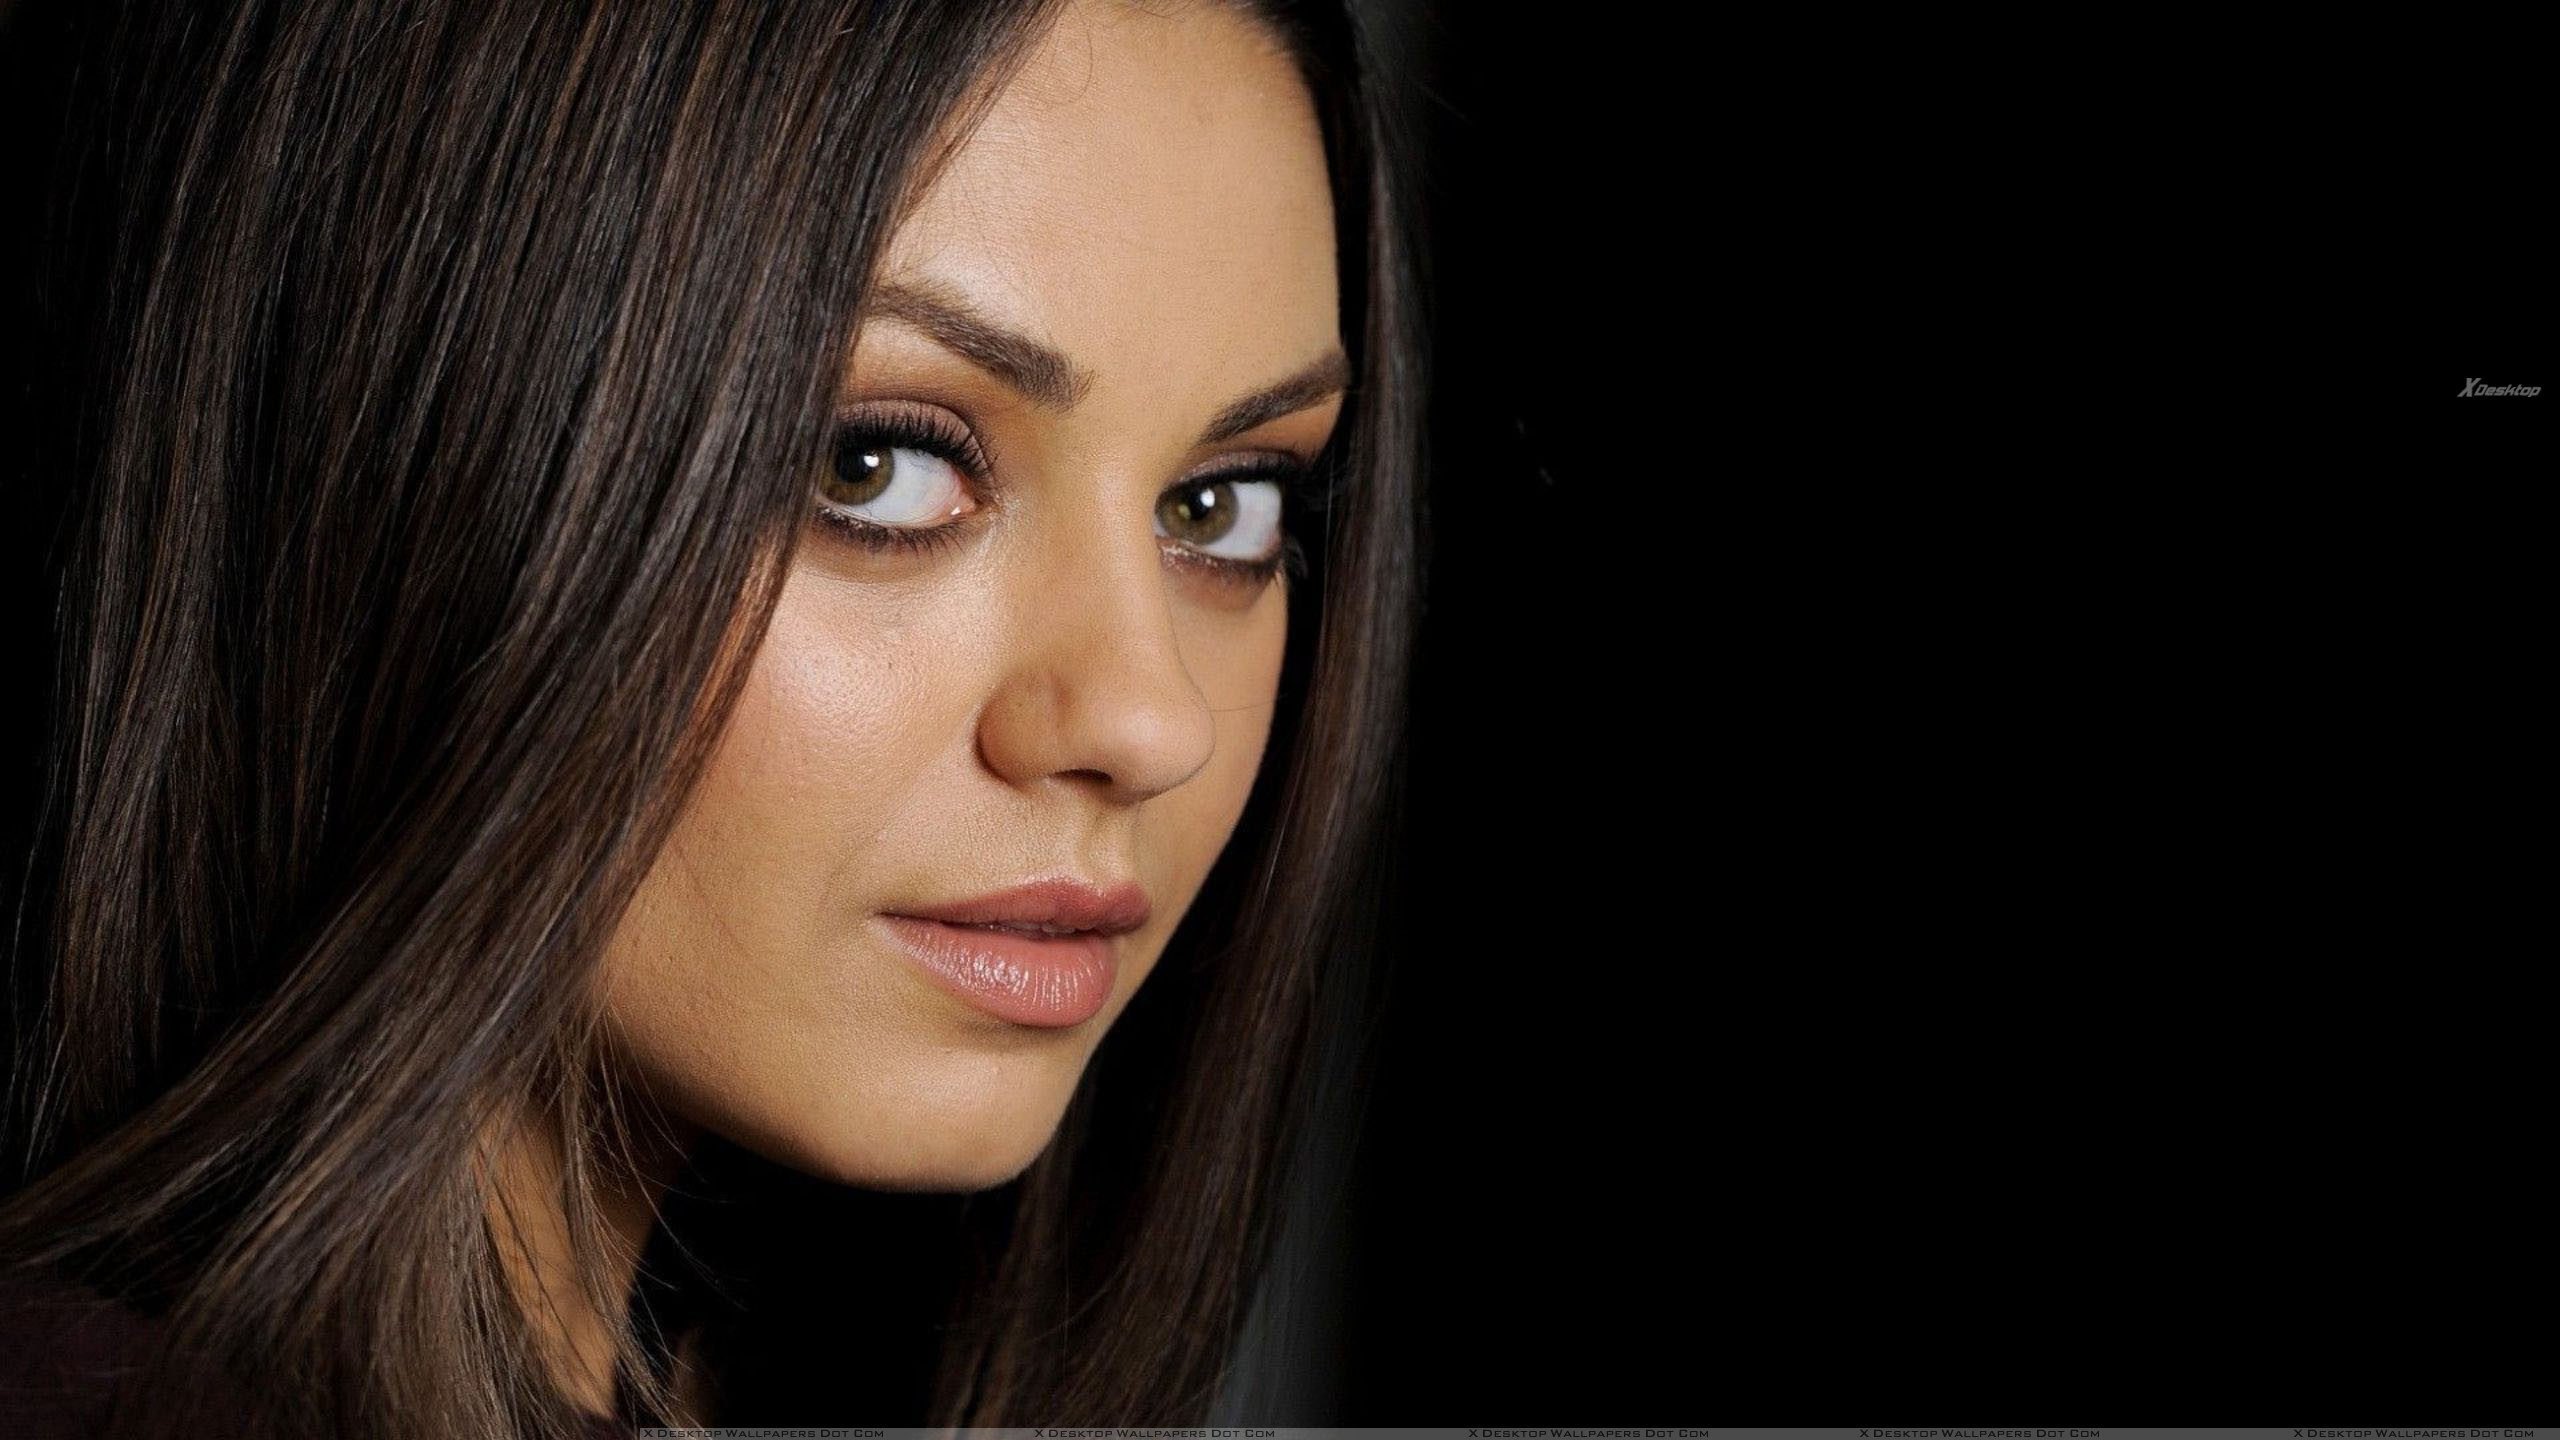 Mila Kunis Wallpapers, Photos amp; Images in HD